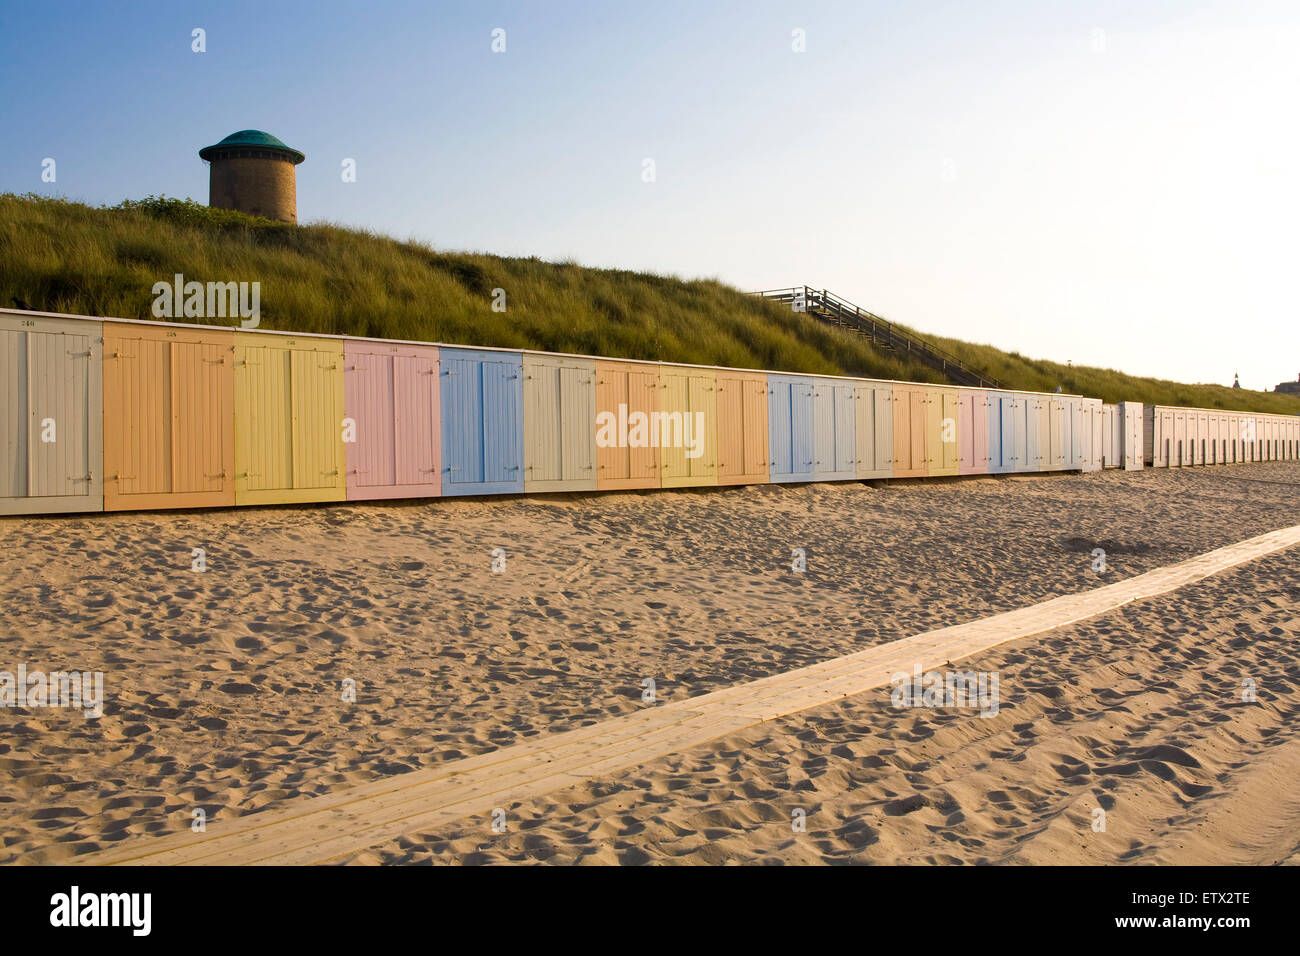 Europe, Netherlands, old water tower in the dunes in Domburg on the peninsula Walcheren, beach cabins.  Europa, - Stock Image